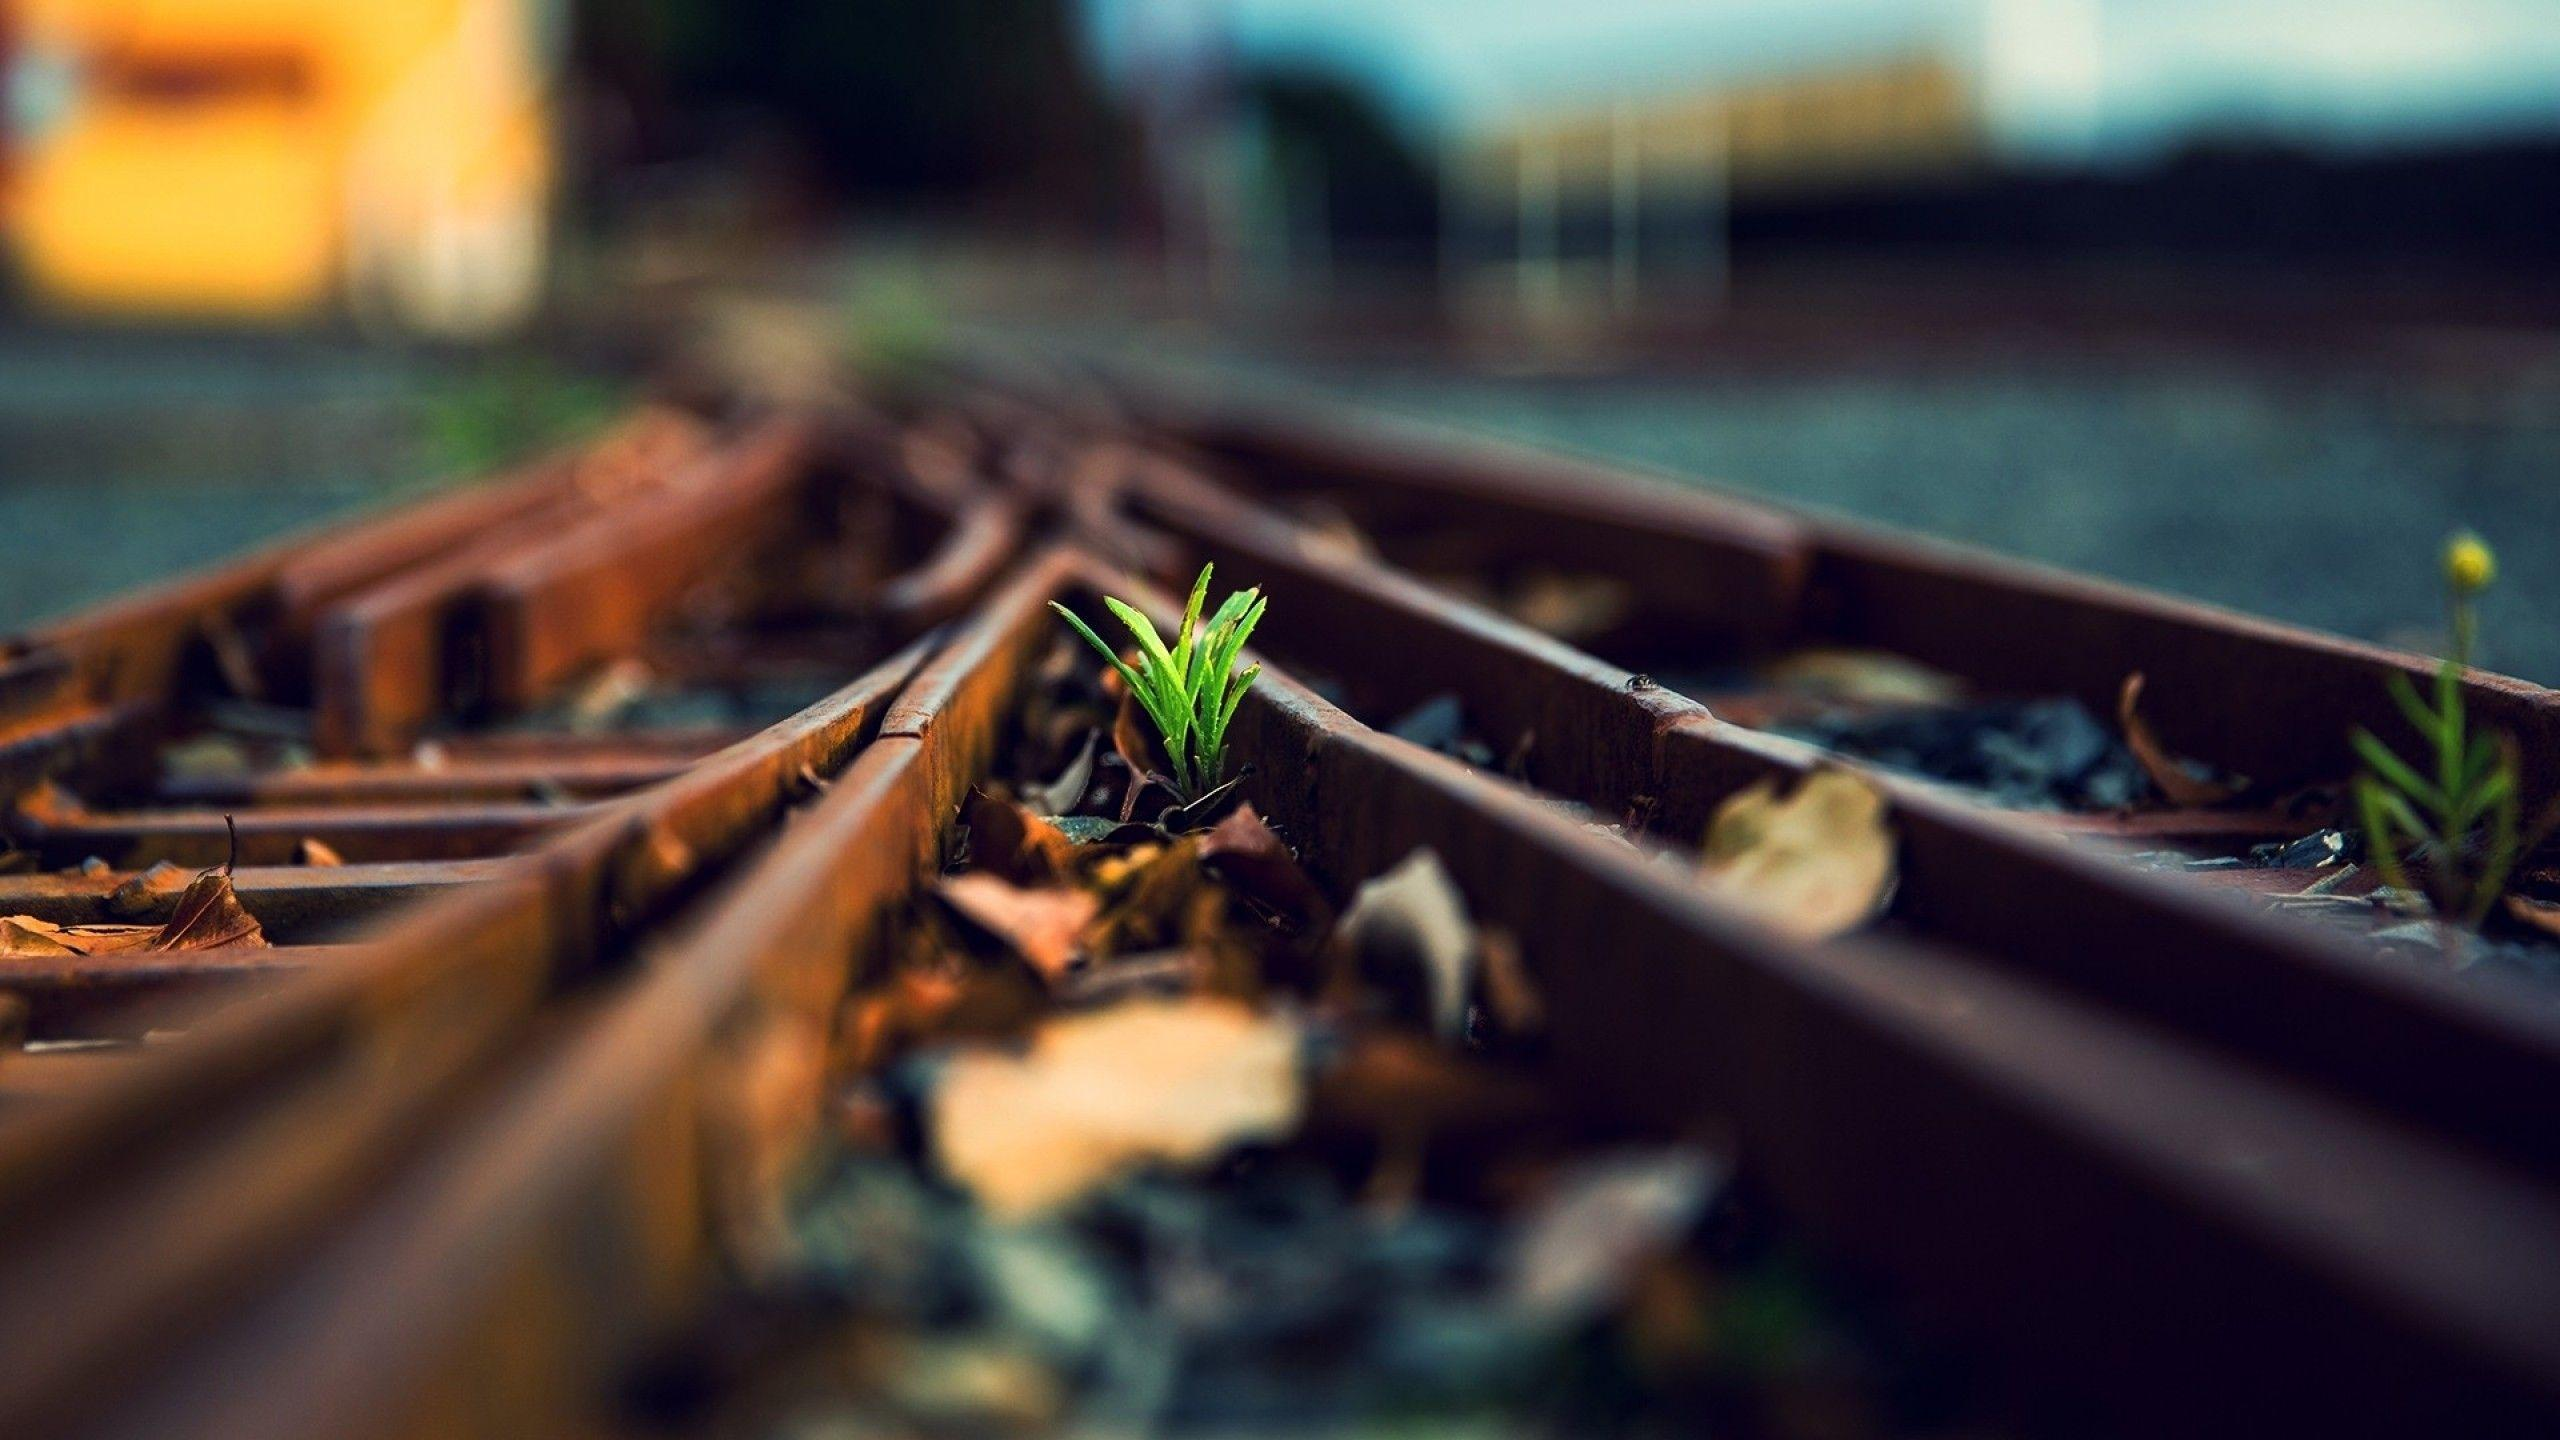 Download 2560x1440 Railway, Tracks, Plants, Blurred Wallpapers for